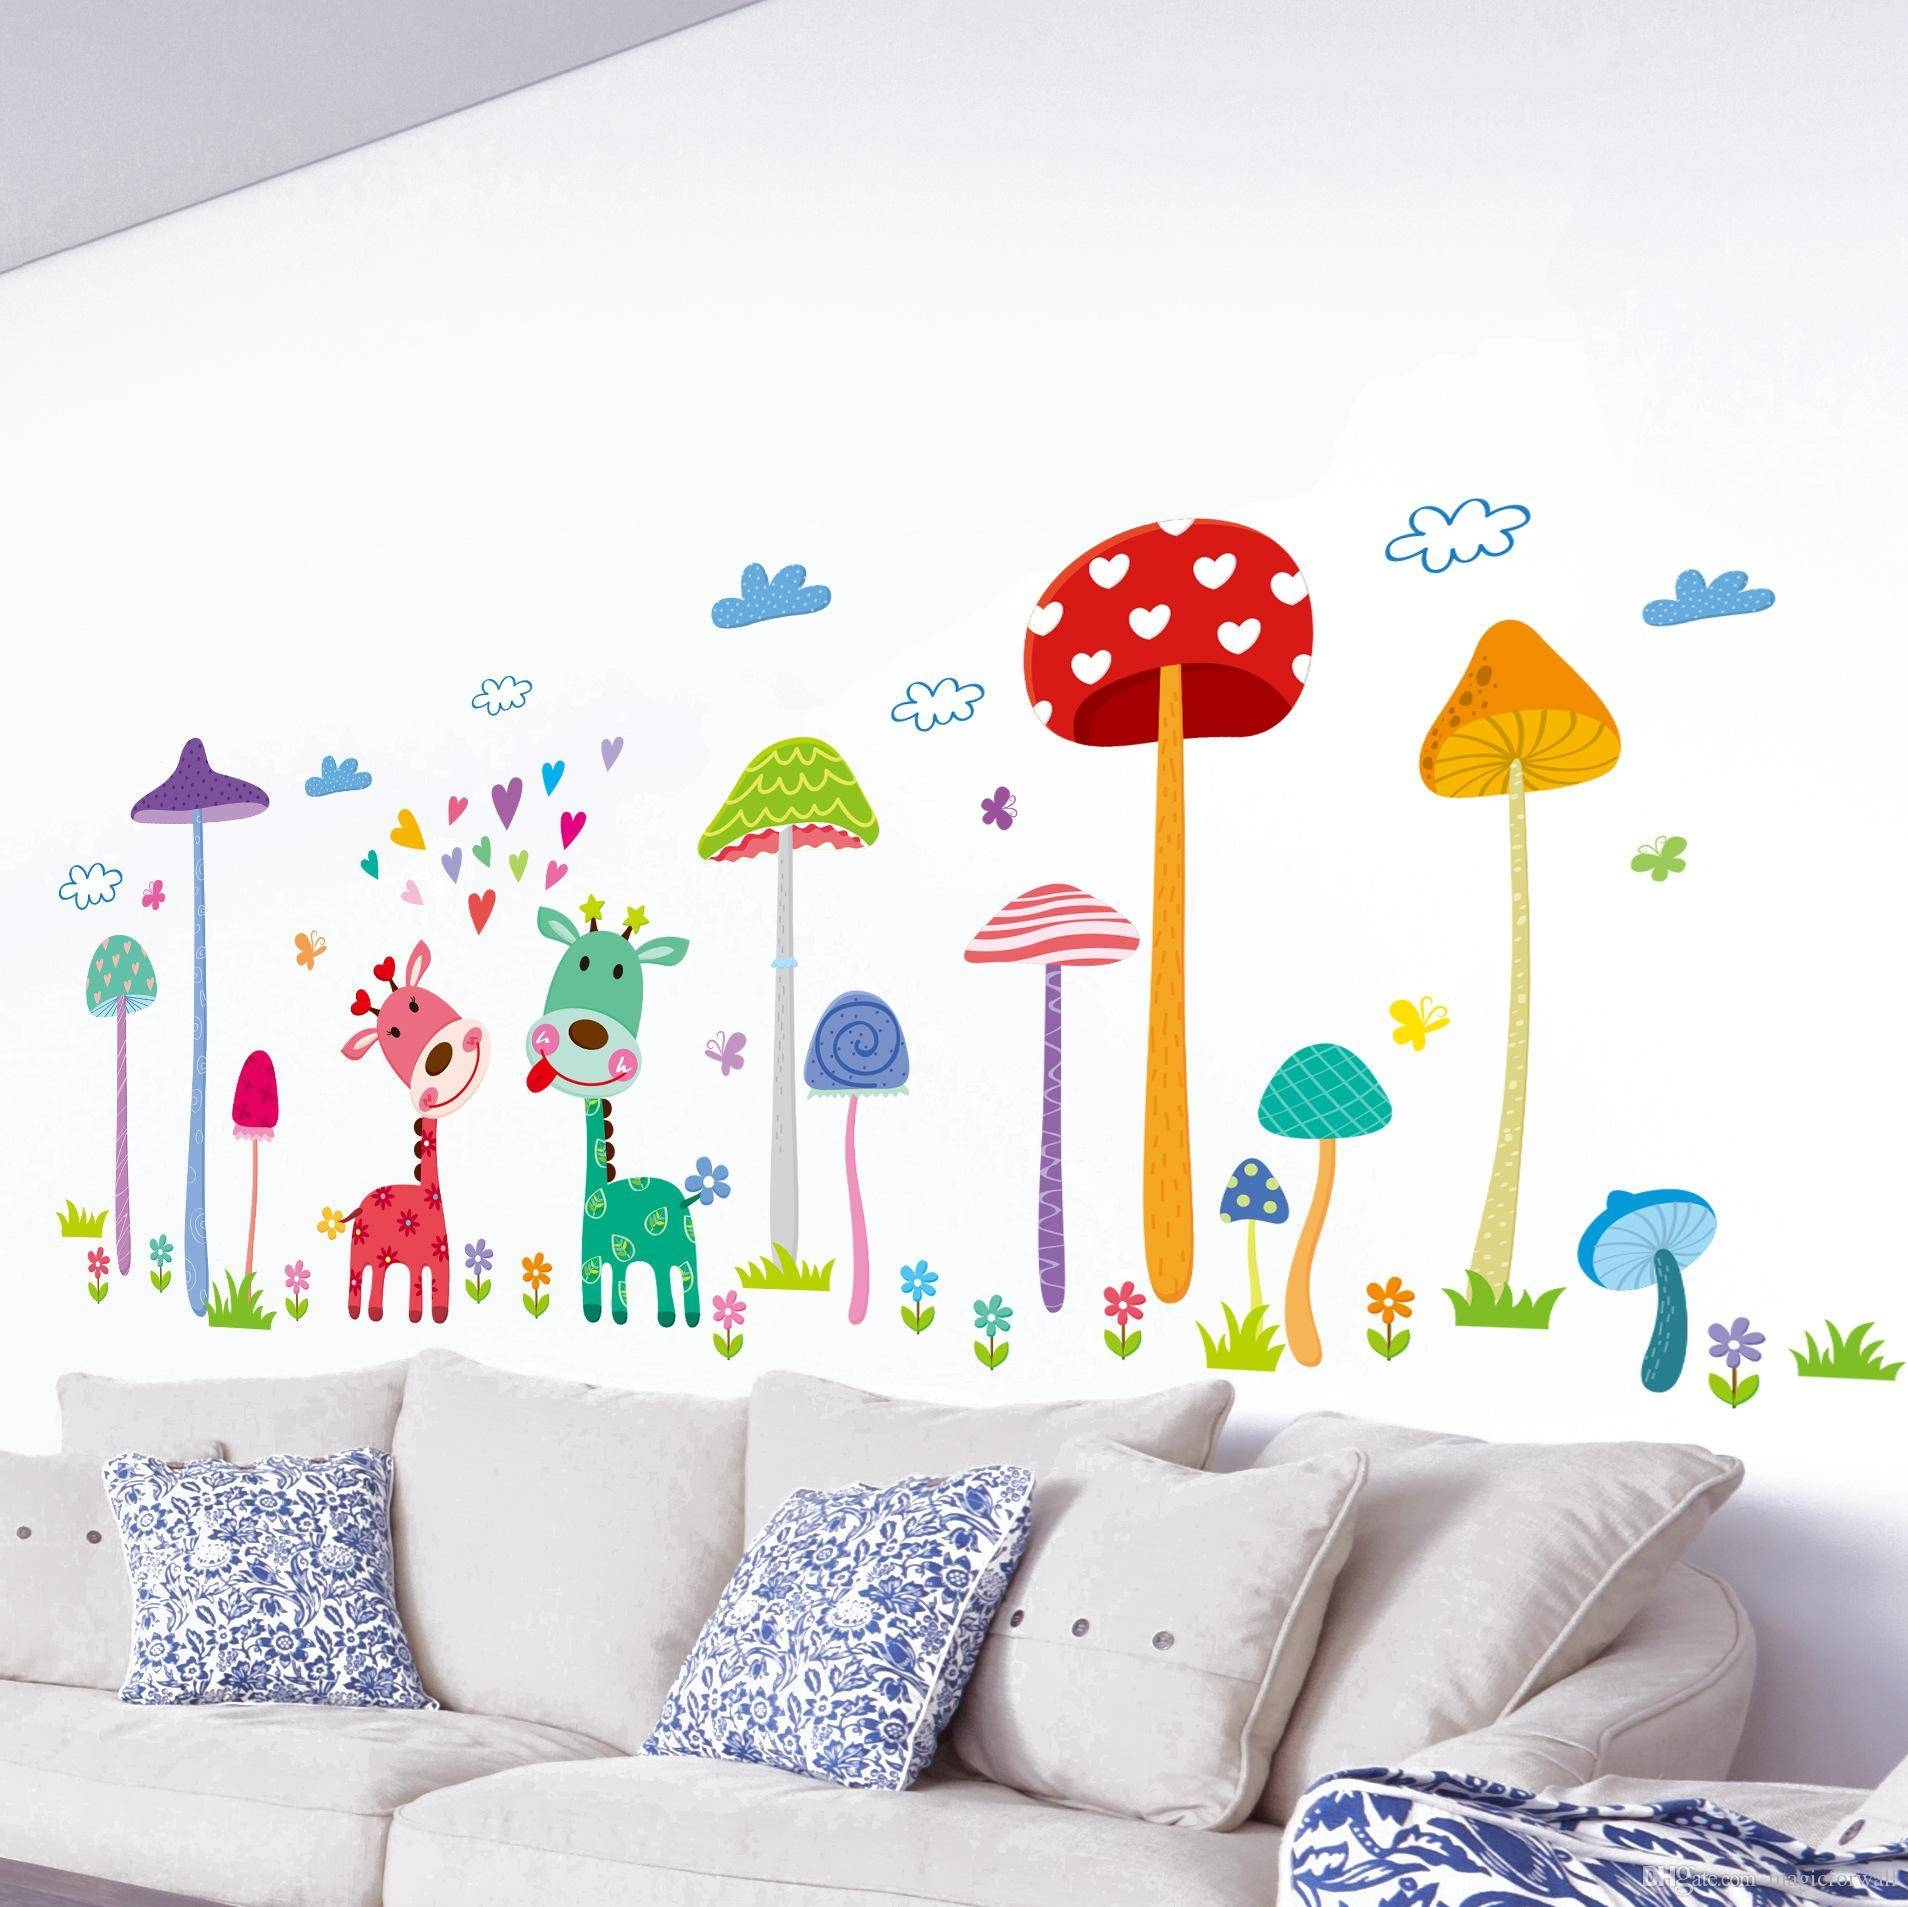 Forest Mushroom Deer Animals Home Wall Art Mural Decor Kids Babies Throughout Newest Baby Animal Wall Art (View 9 of 20)